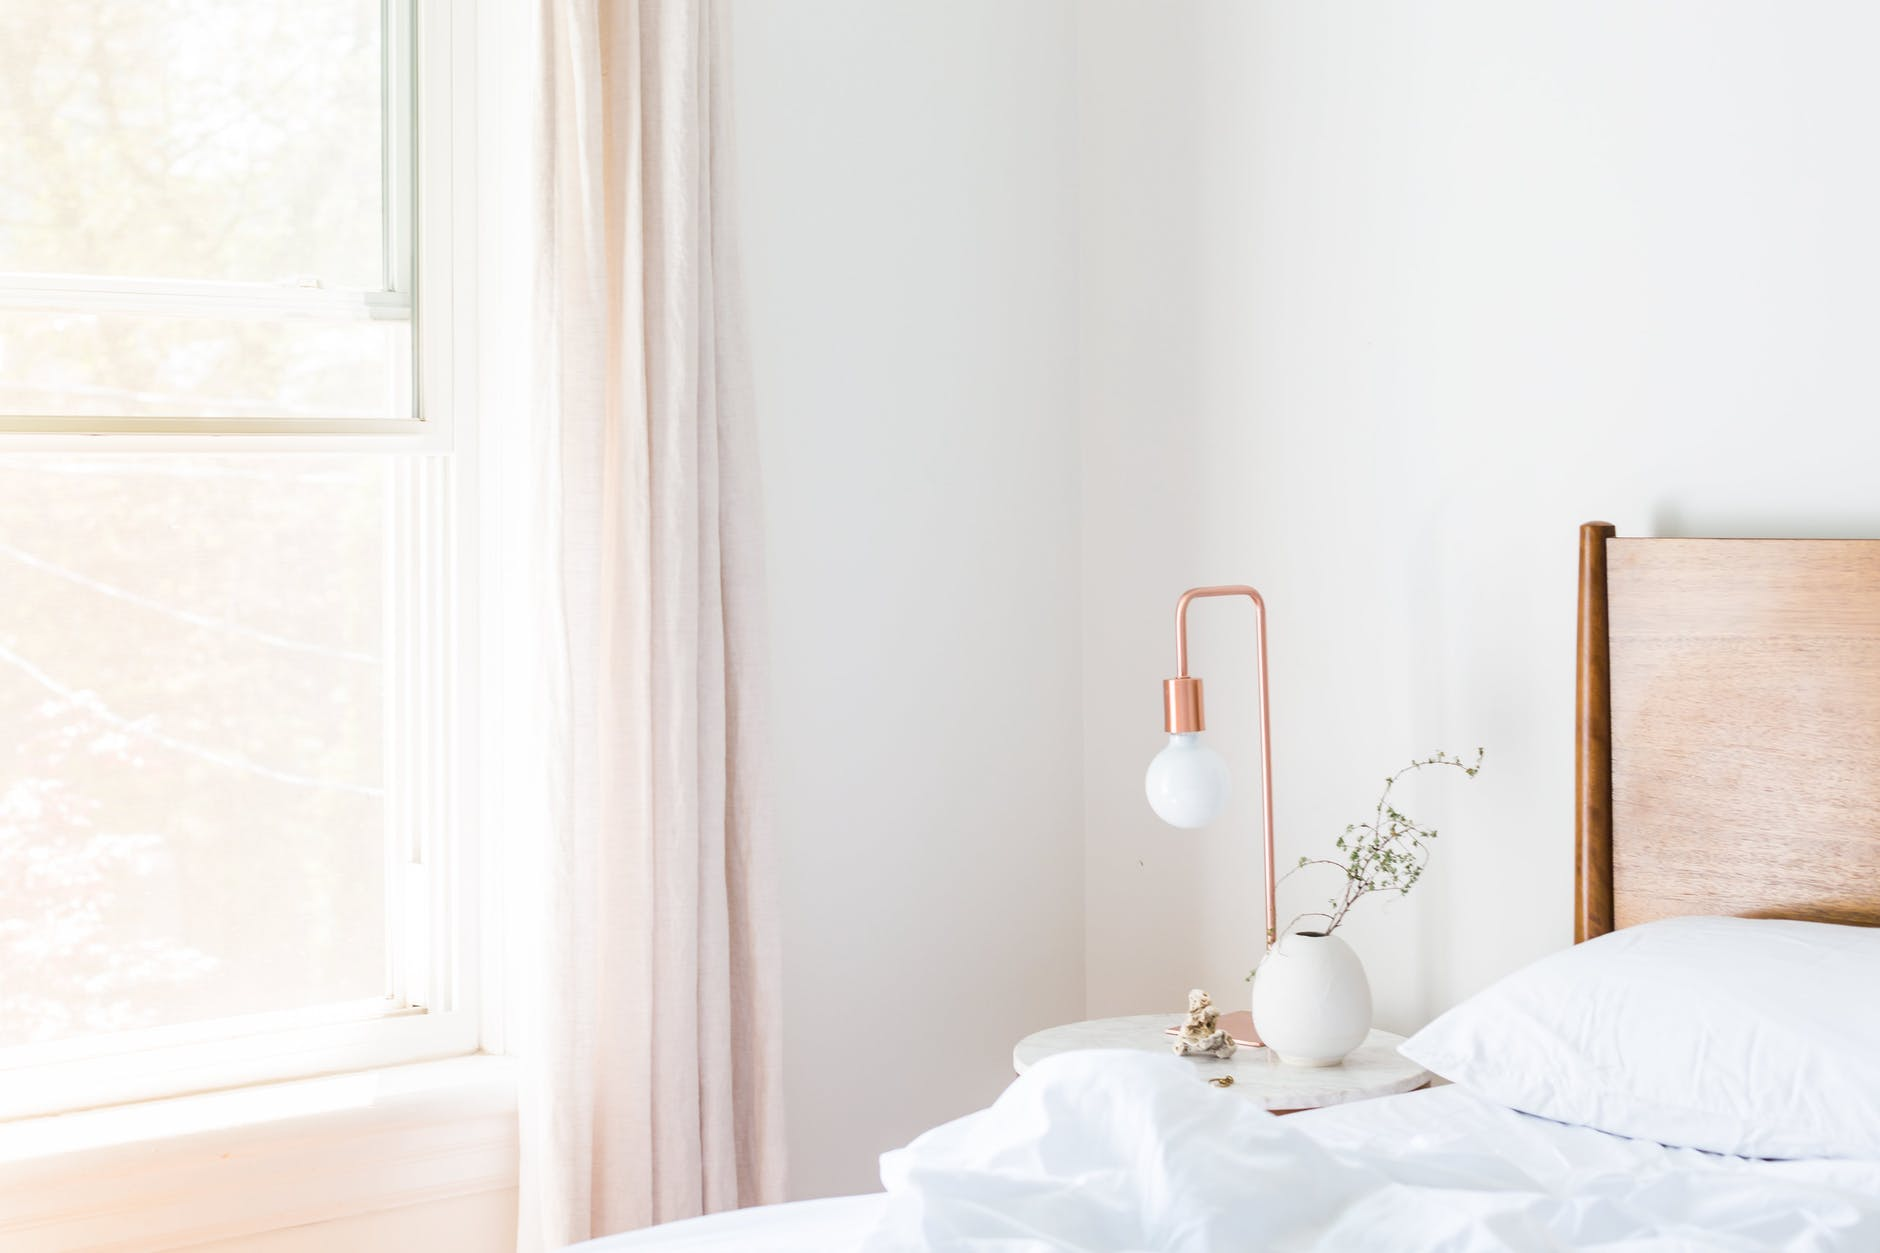 white table lamp and vase on side nightstand